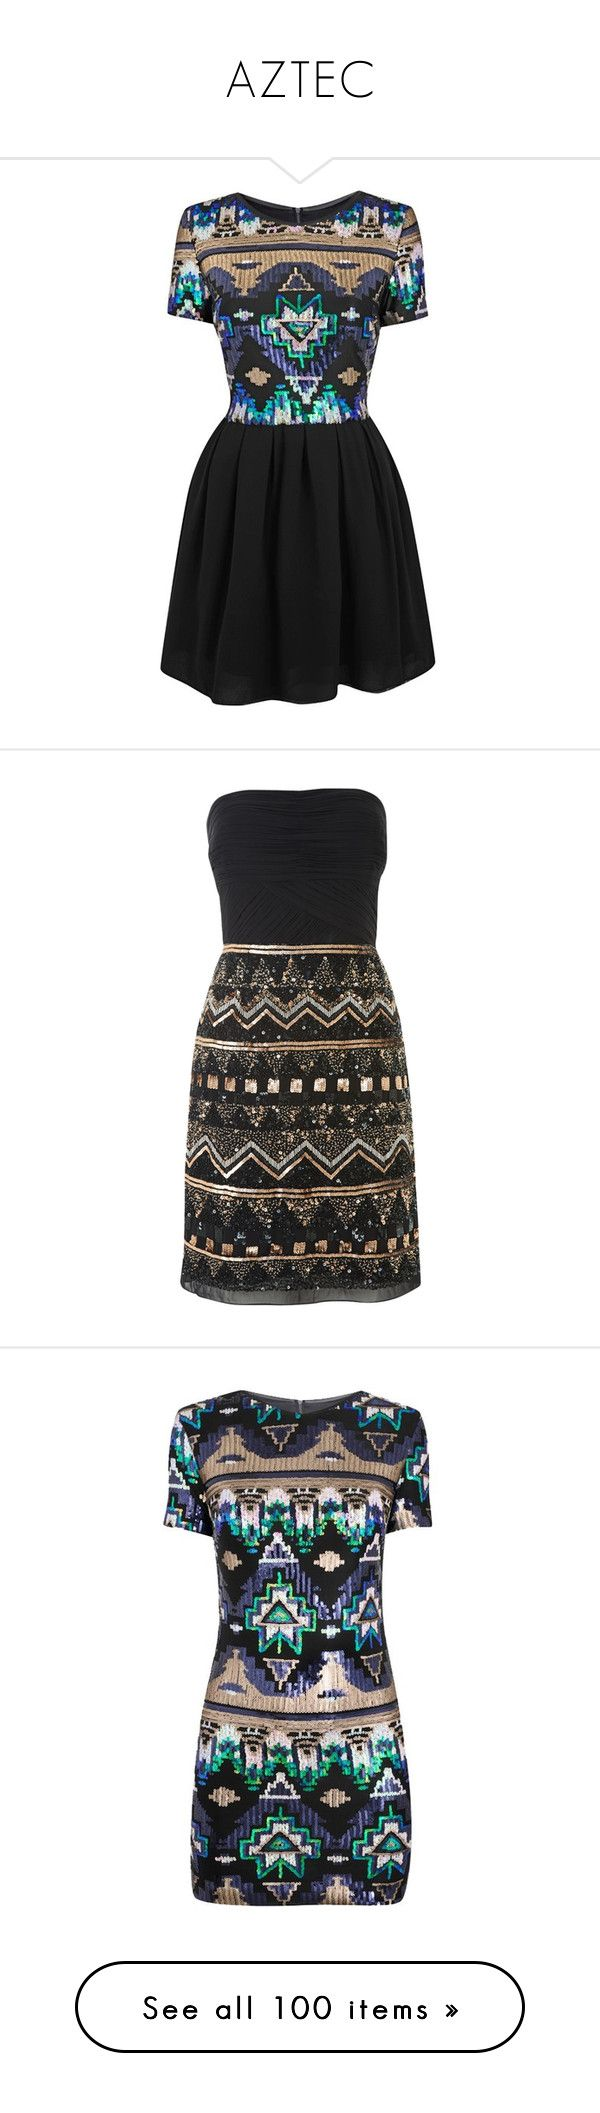 """""""AZTEC"""" by shoppings9 ❤ liked on Polyvore featuring dresses, vestidos, aztec dress, aztec print dress, sequin dress, aztec sequin dress, aztec pattern dress, robe, short dresses and black gold"""